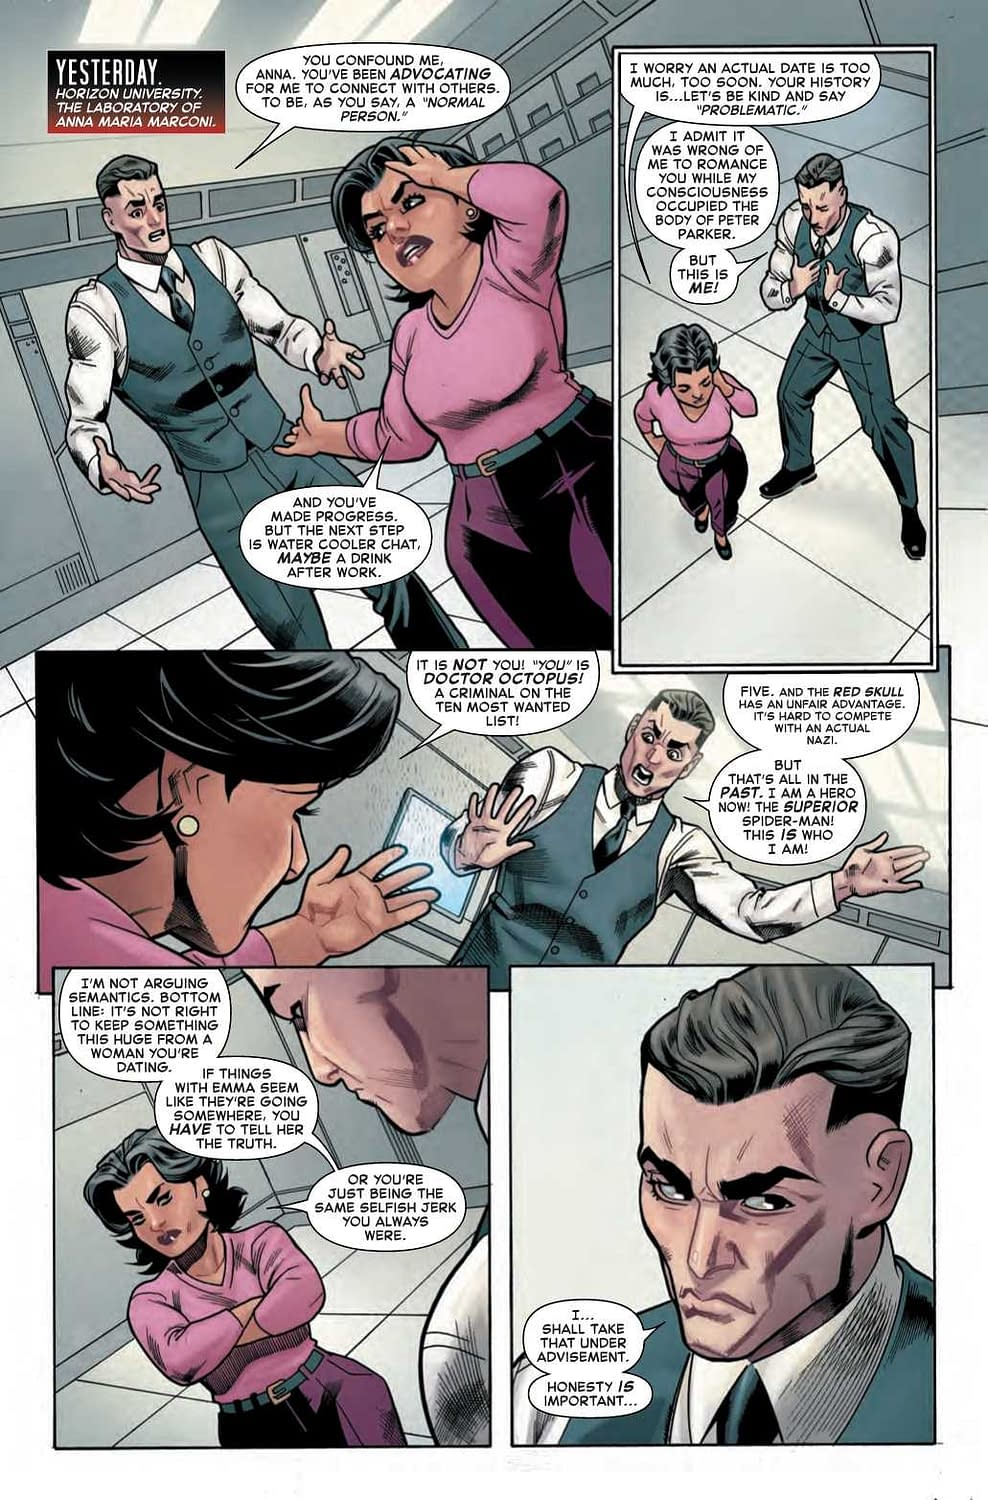 Doctor Octopus Gets Woke in This Superior Spider-Man #5 Preview